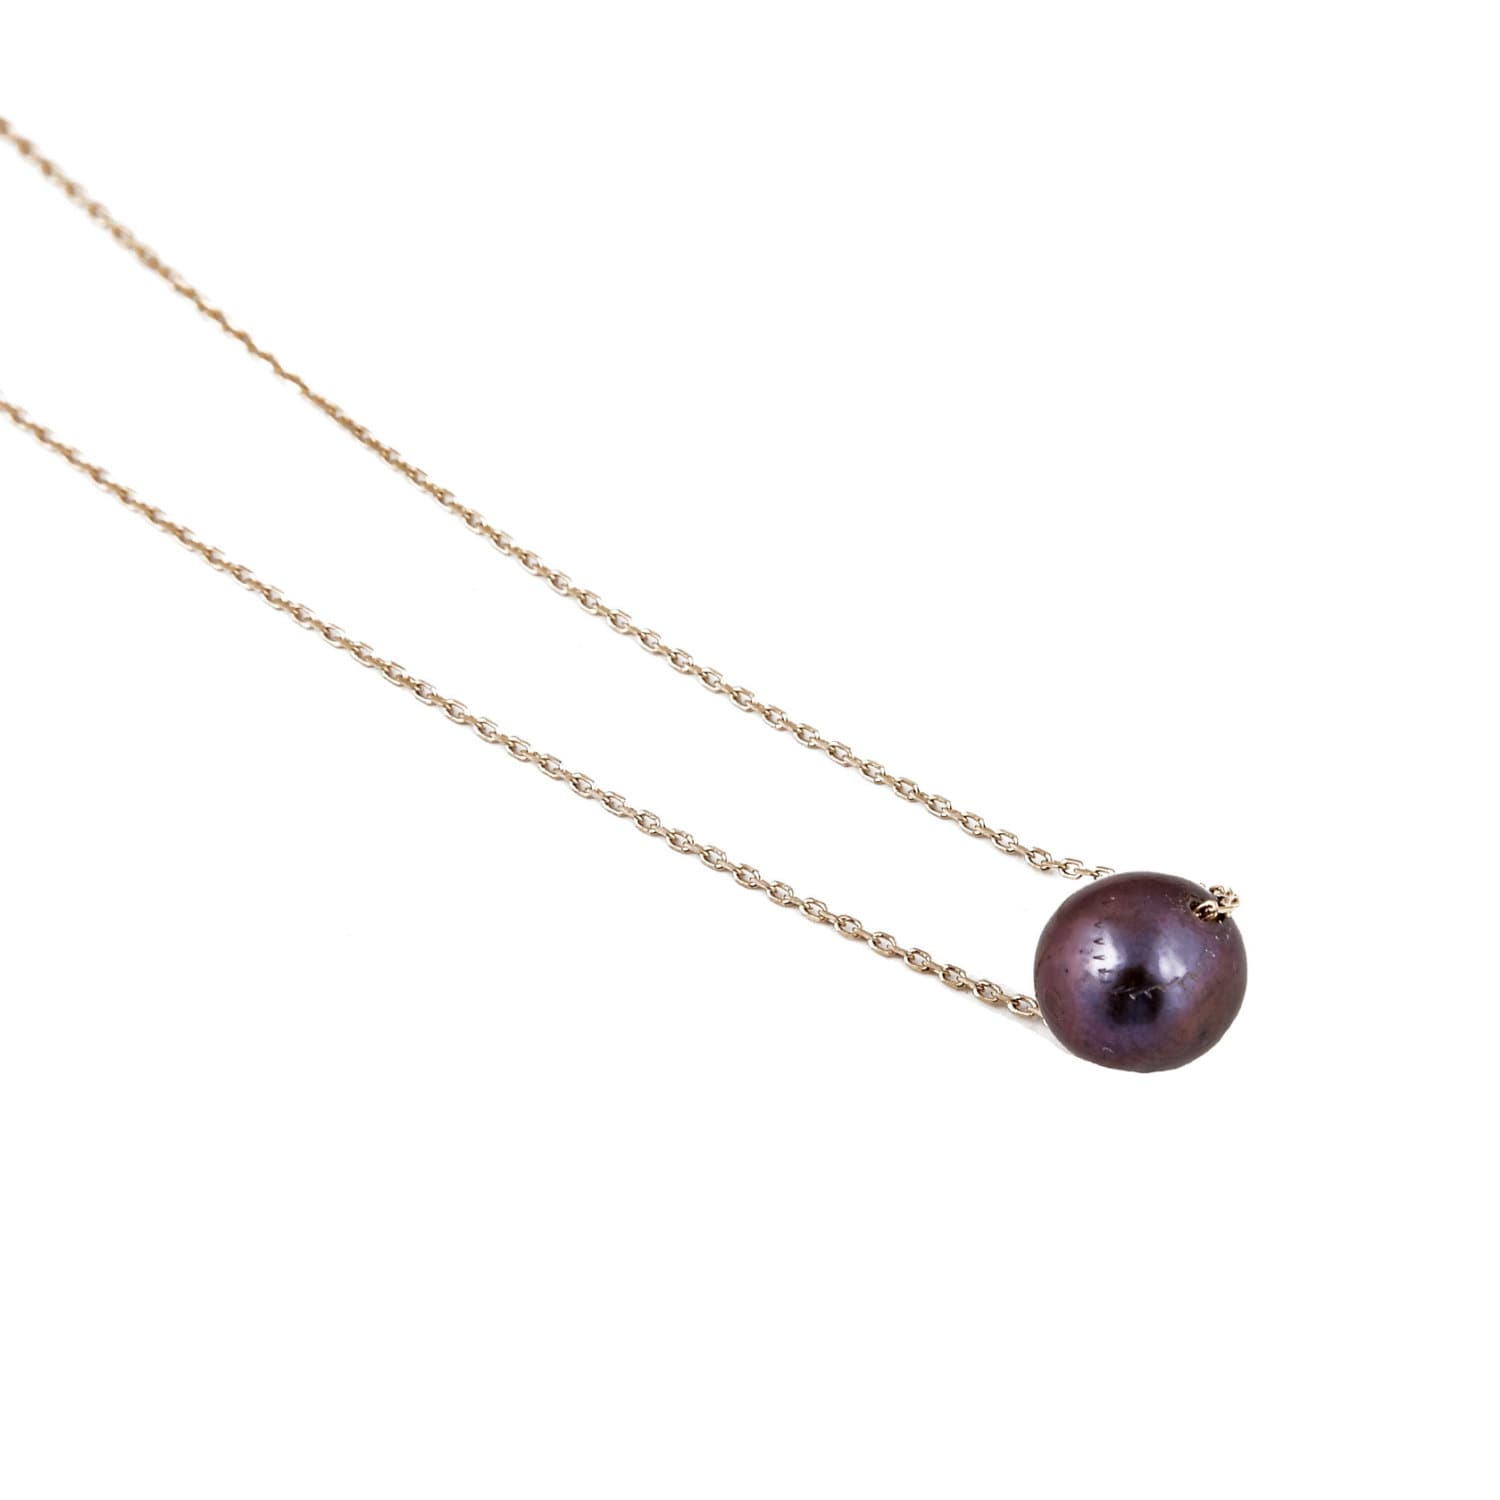 pearl biwa image strand main seed douglas necklace products and large single pink coleman in